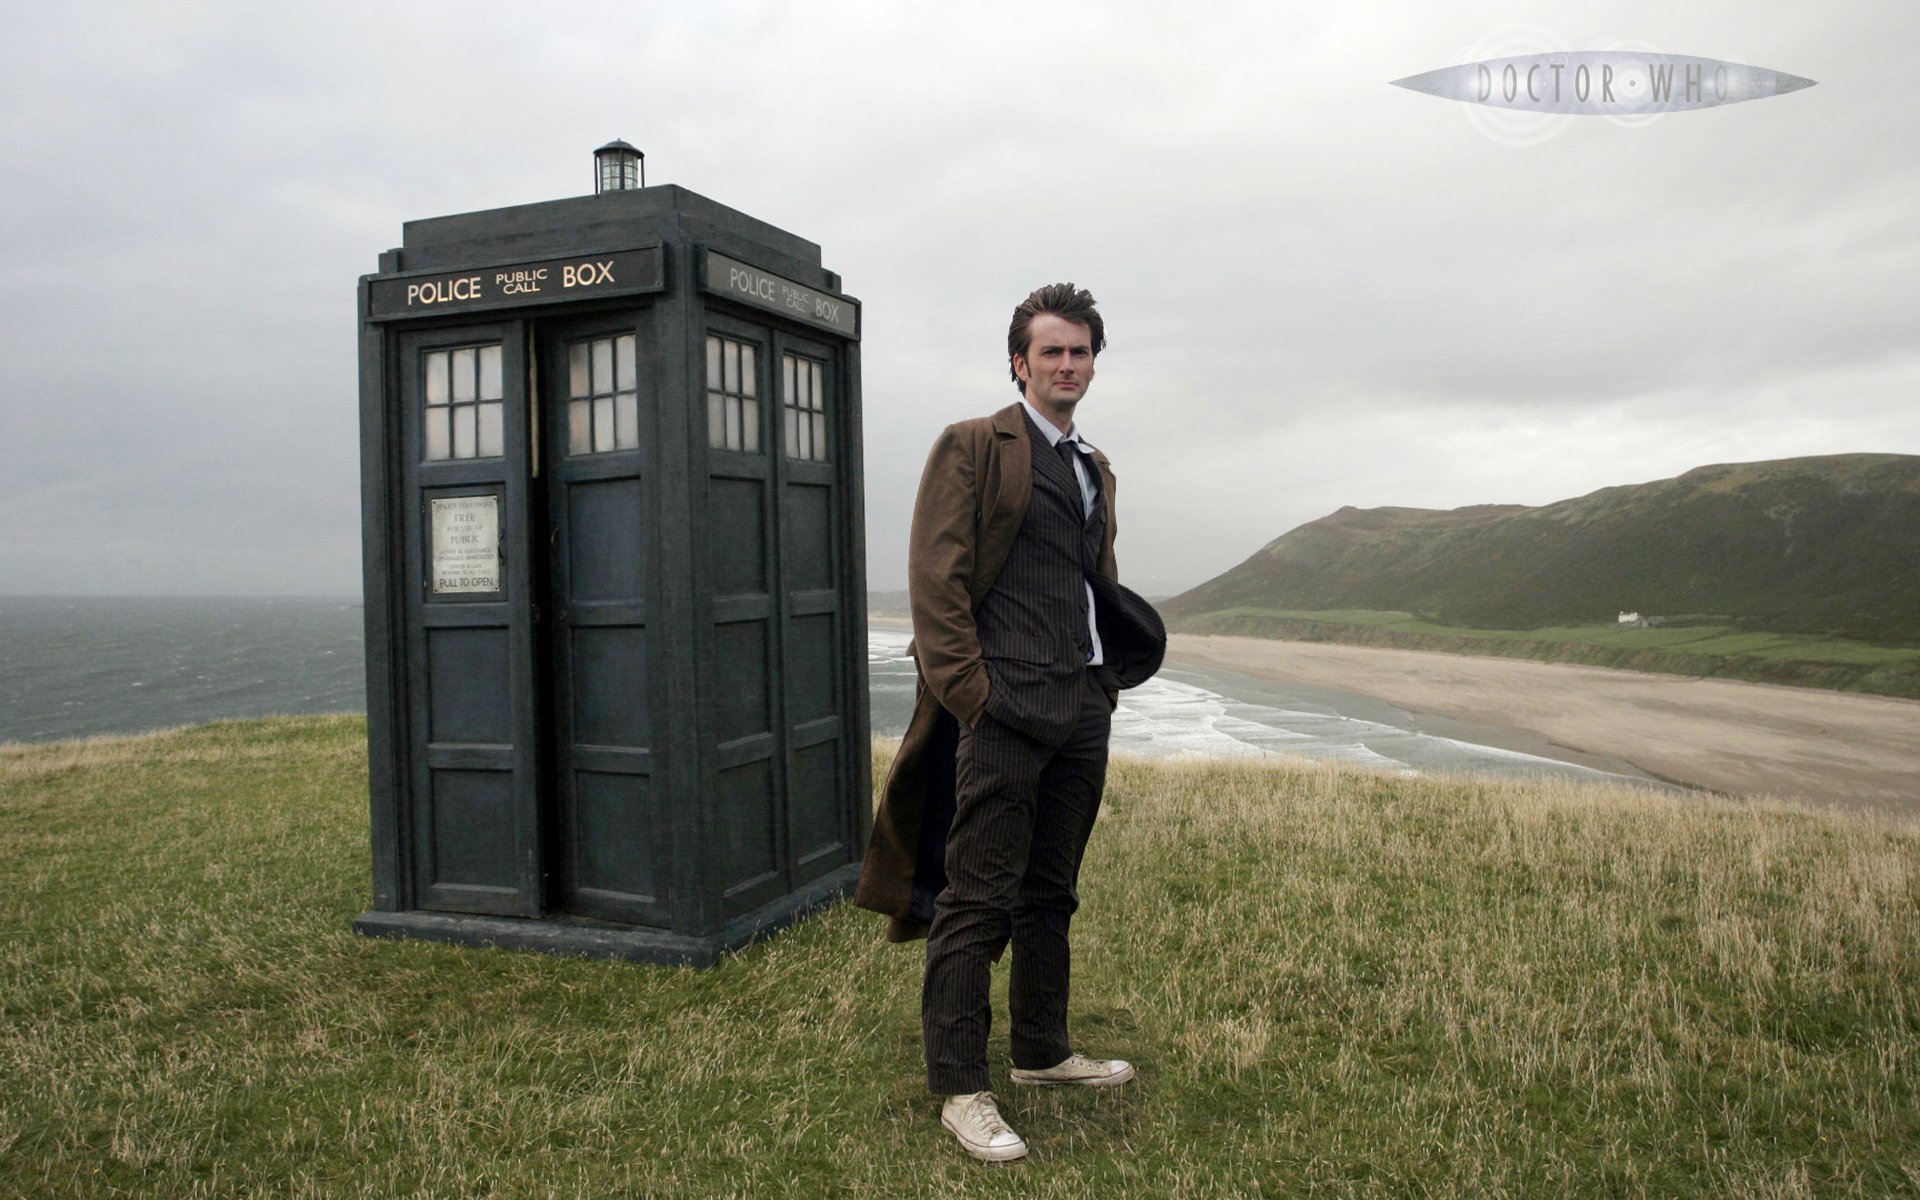 Televisieprogramma - Doctor Who  Dr. Who Wallpaper